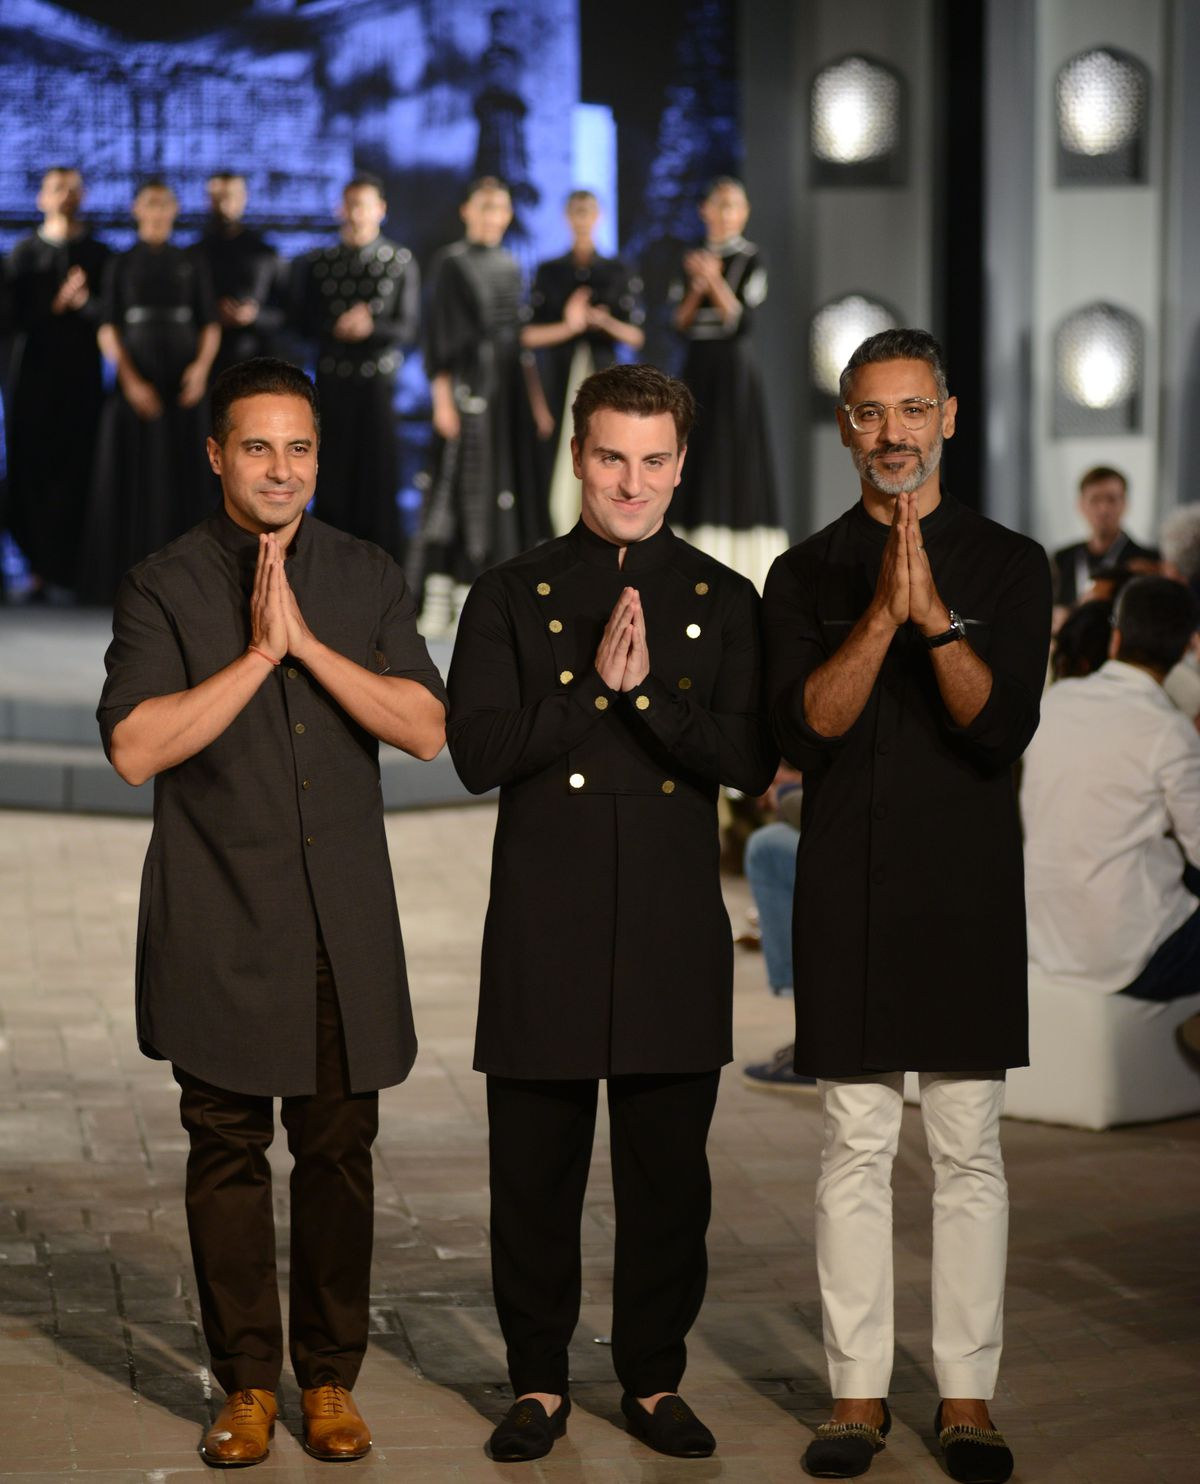 Brian Chesky with Indian celebrity designer duo Shantanu and Nikhil at an event in Delhi, India.